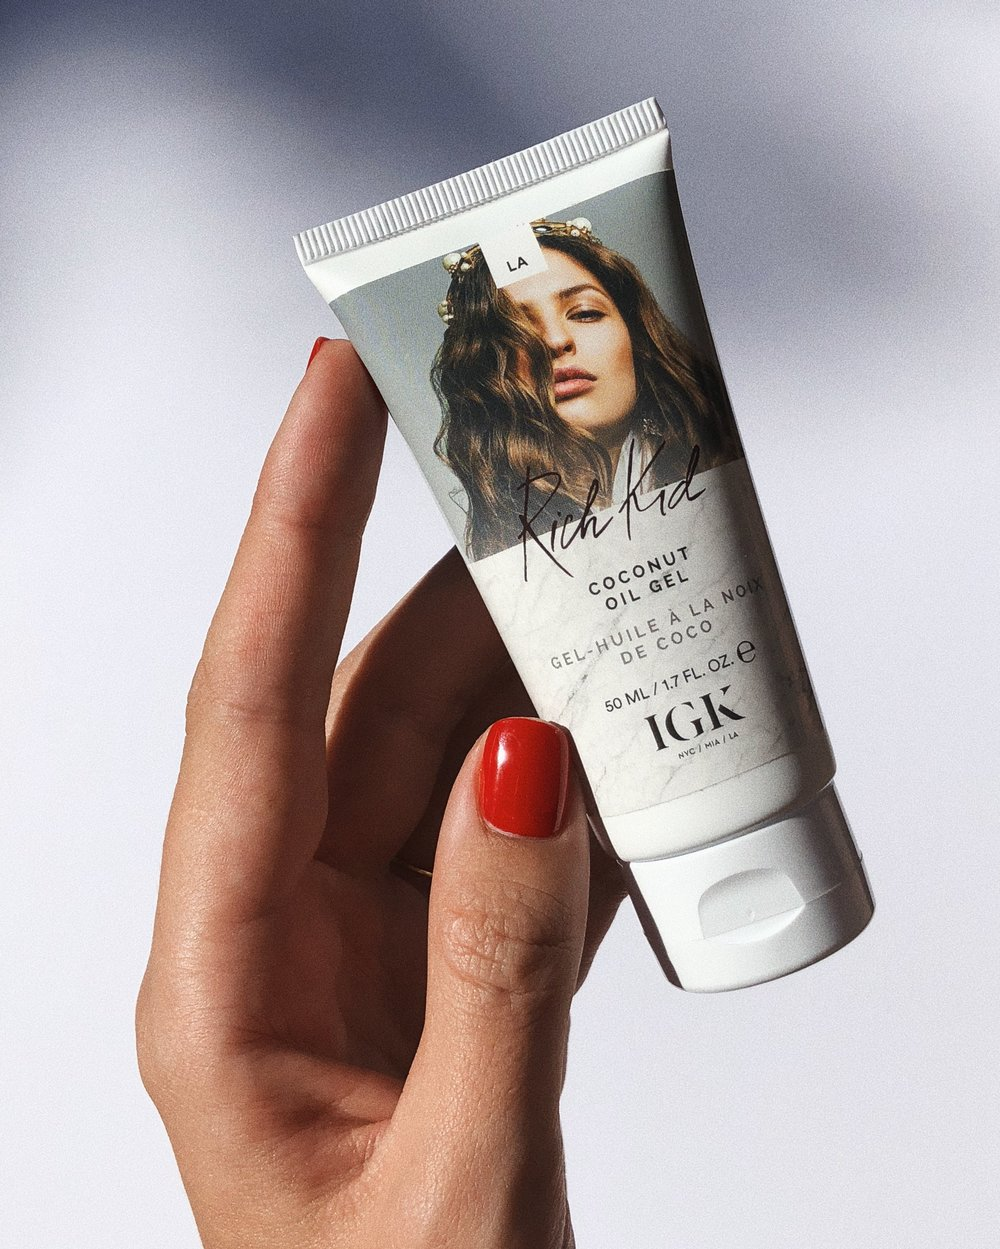 IGK - Coconut Oil Gel. Smells like a beach vacation! You apply it on wet hair to create a messy look. I have super fine hair and just a tiny drop of it on the ends is enough to create some texture without making my hair look dirty or too dry. Interesting product, nothing I ever tried before.